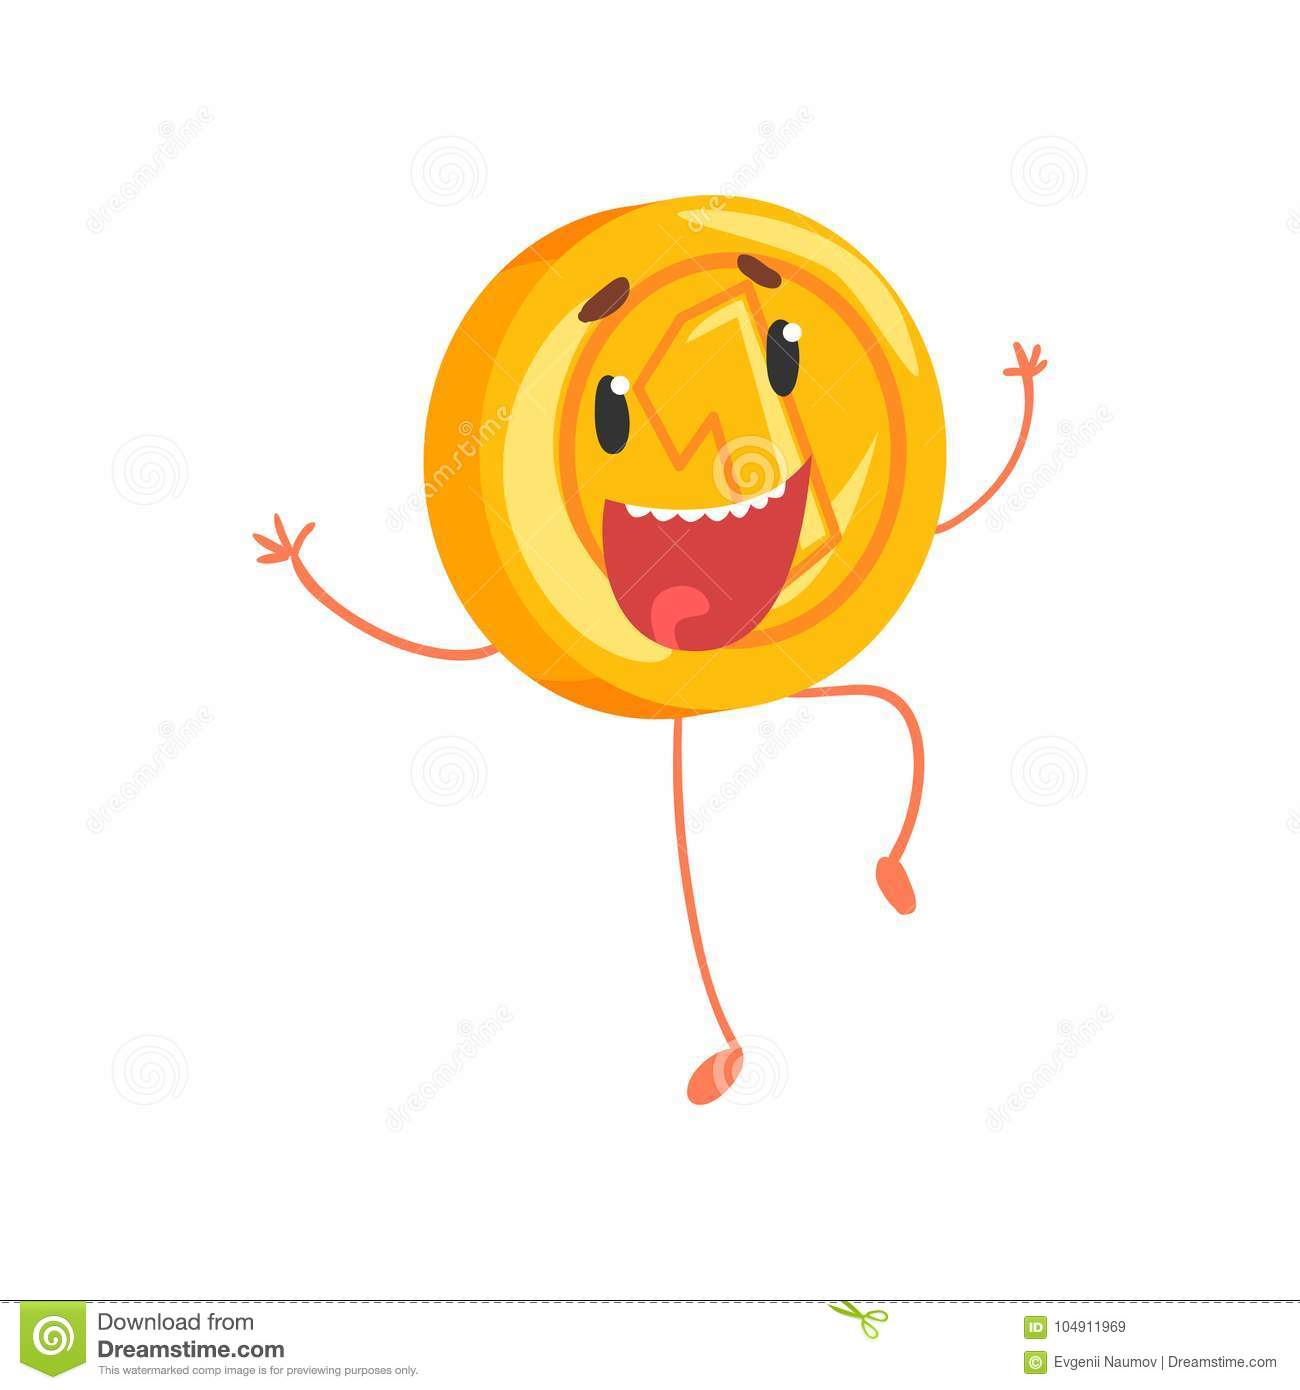 Joyful golden coin jumping with hands up. Cartoon money character with legs and arms. One cent or penny icon in flat